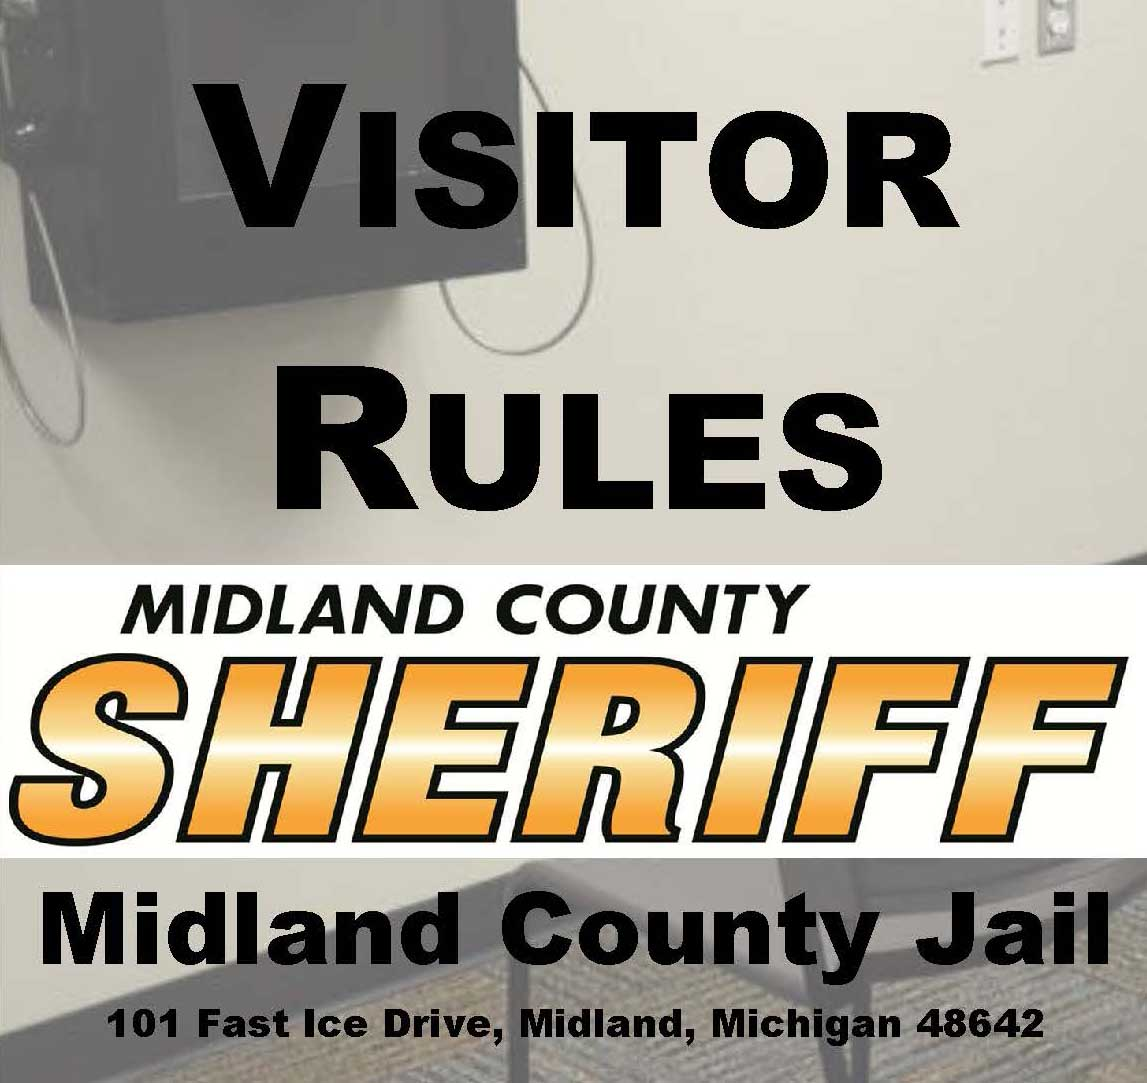 County of Midland, Michigan > Sheriff > Jail > Visitation